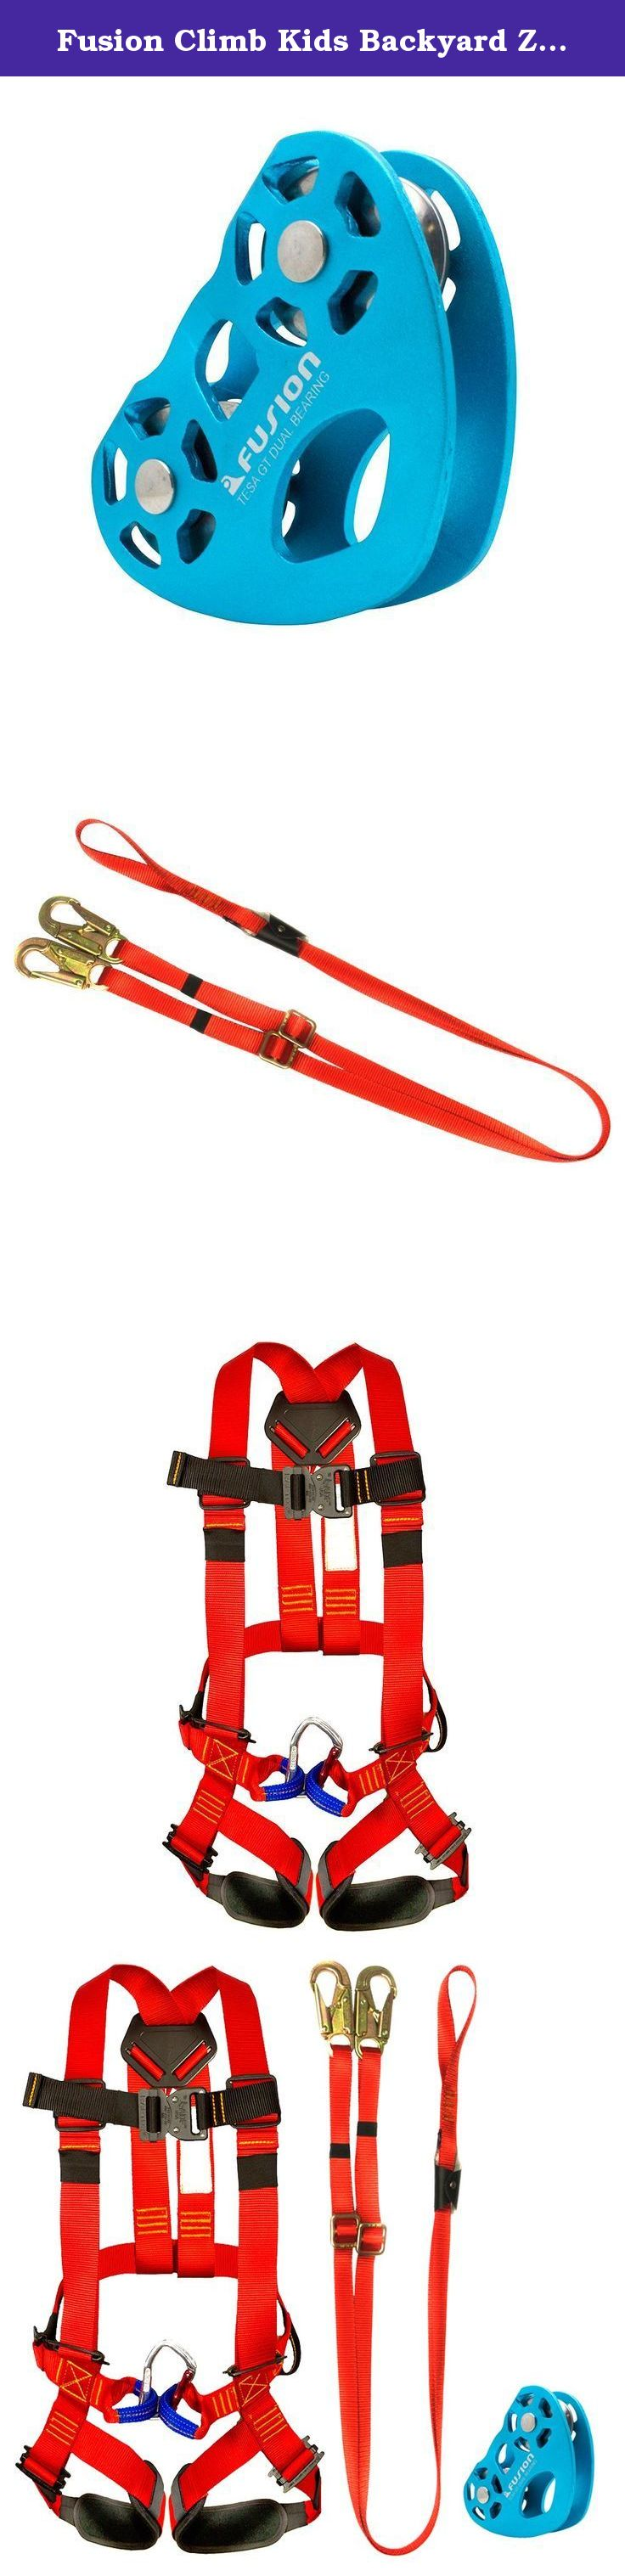 Fusion Climb Kids Backyard Zip FK-K-HLT-03 Line Kit Harness Lanyard Trolley Bundle, Black. Fusion Climb Kids Backyard Zip Line Kit Harness Lanyard Trolley Bundle FK-K-HLT-03 Fusion Climb Warrior Kids Full Body Climbing Rope Course Harness Red - Light-weight and secure full body harness designed specifically for kids ages 3-8. - Easy adjustment to accommodate many sized climbers. - Keep your little one safe and comfortable as you both climb to new levels! - Padded on the leg loops for comfort...